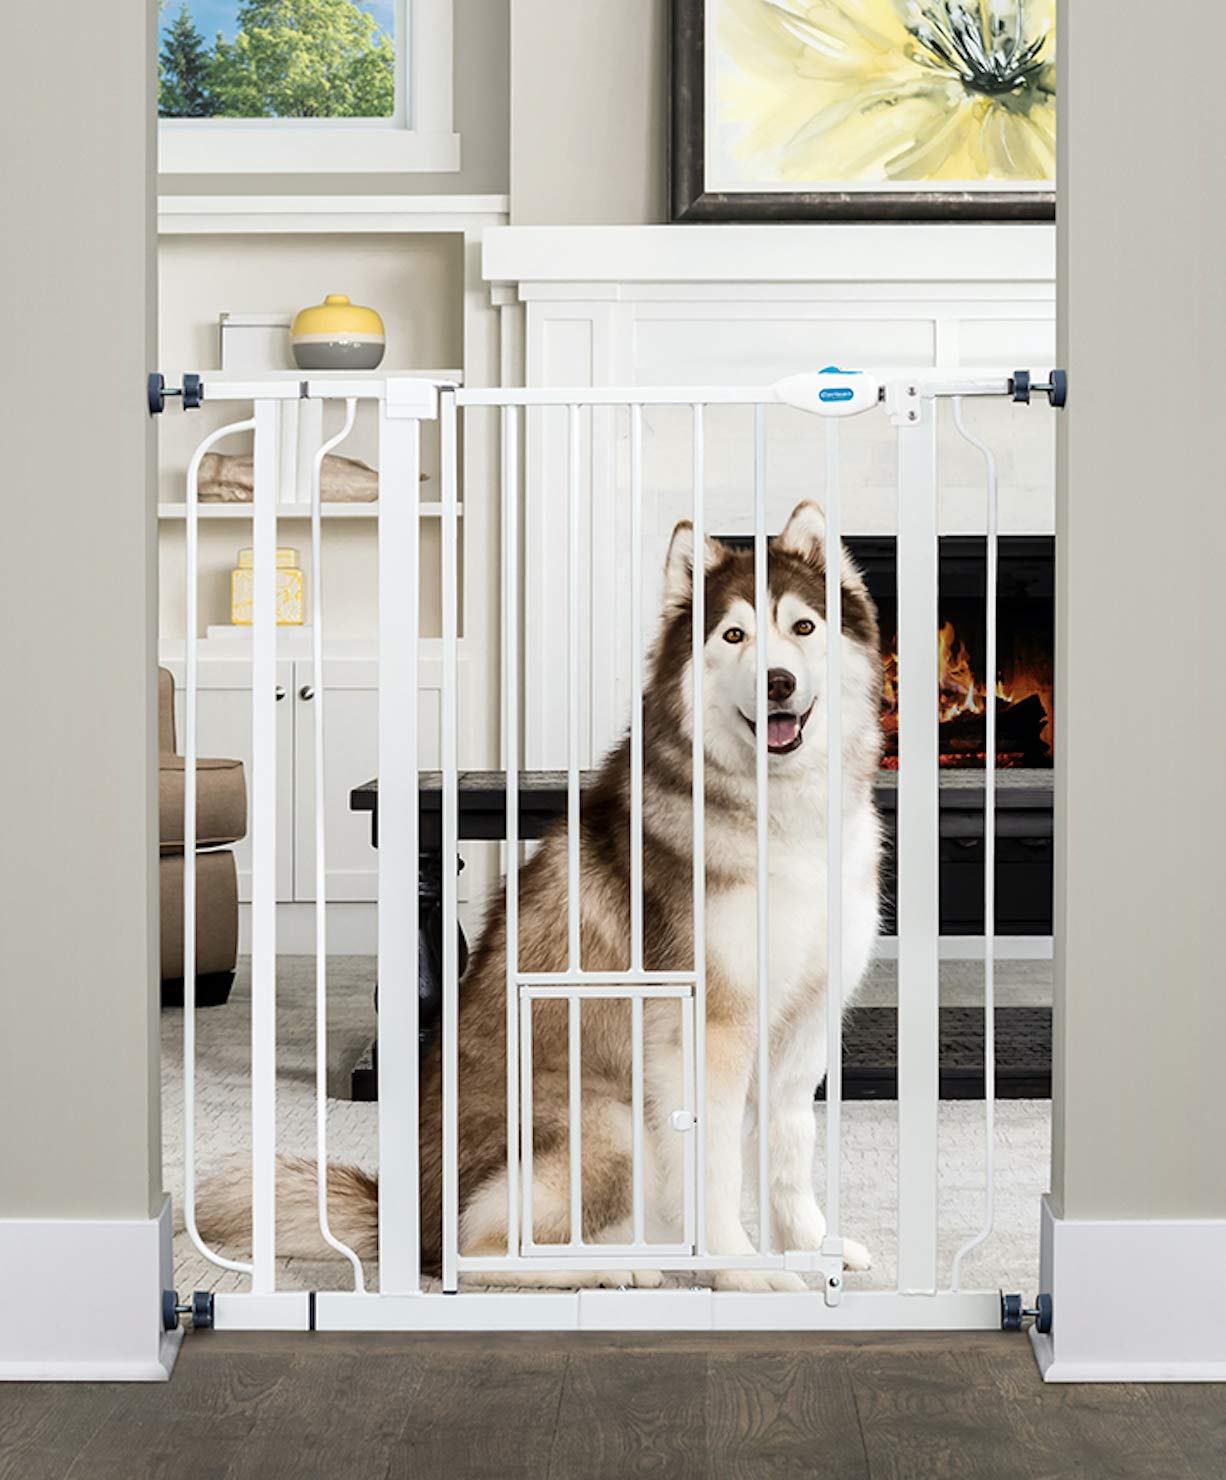 Carlson Extra Tall Walk Through Pet Gate with Small Pet Door, Includes 4-Inch Extension Kit, 4 Pack Pressure Mount Kit and 4 Pack Wall Mount Kit by Carlson